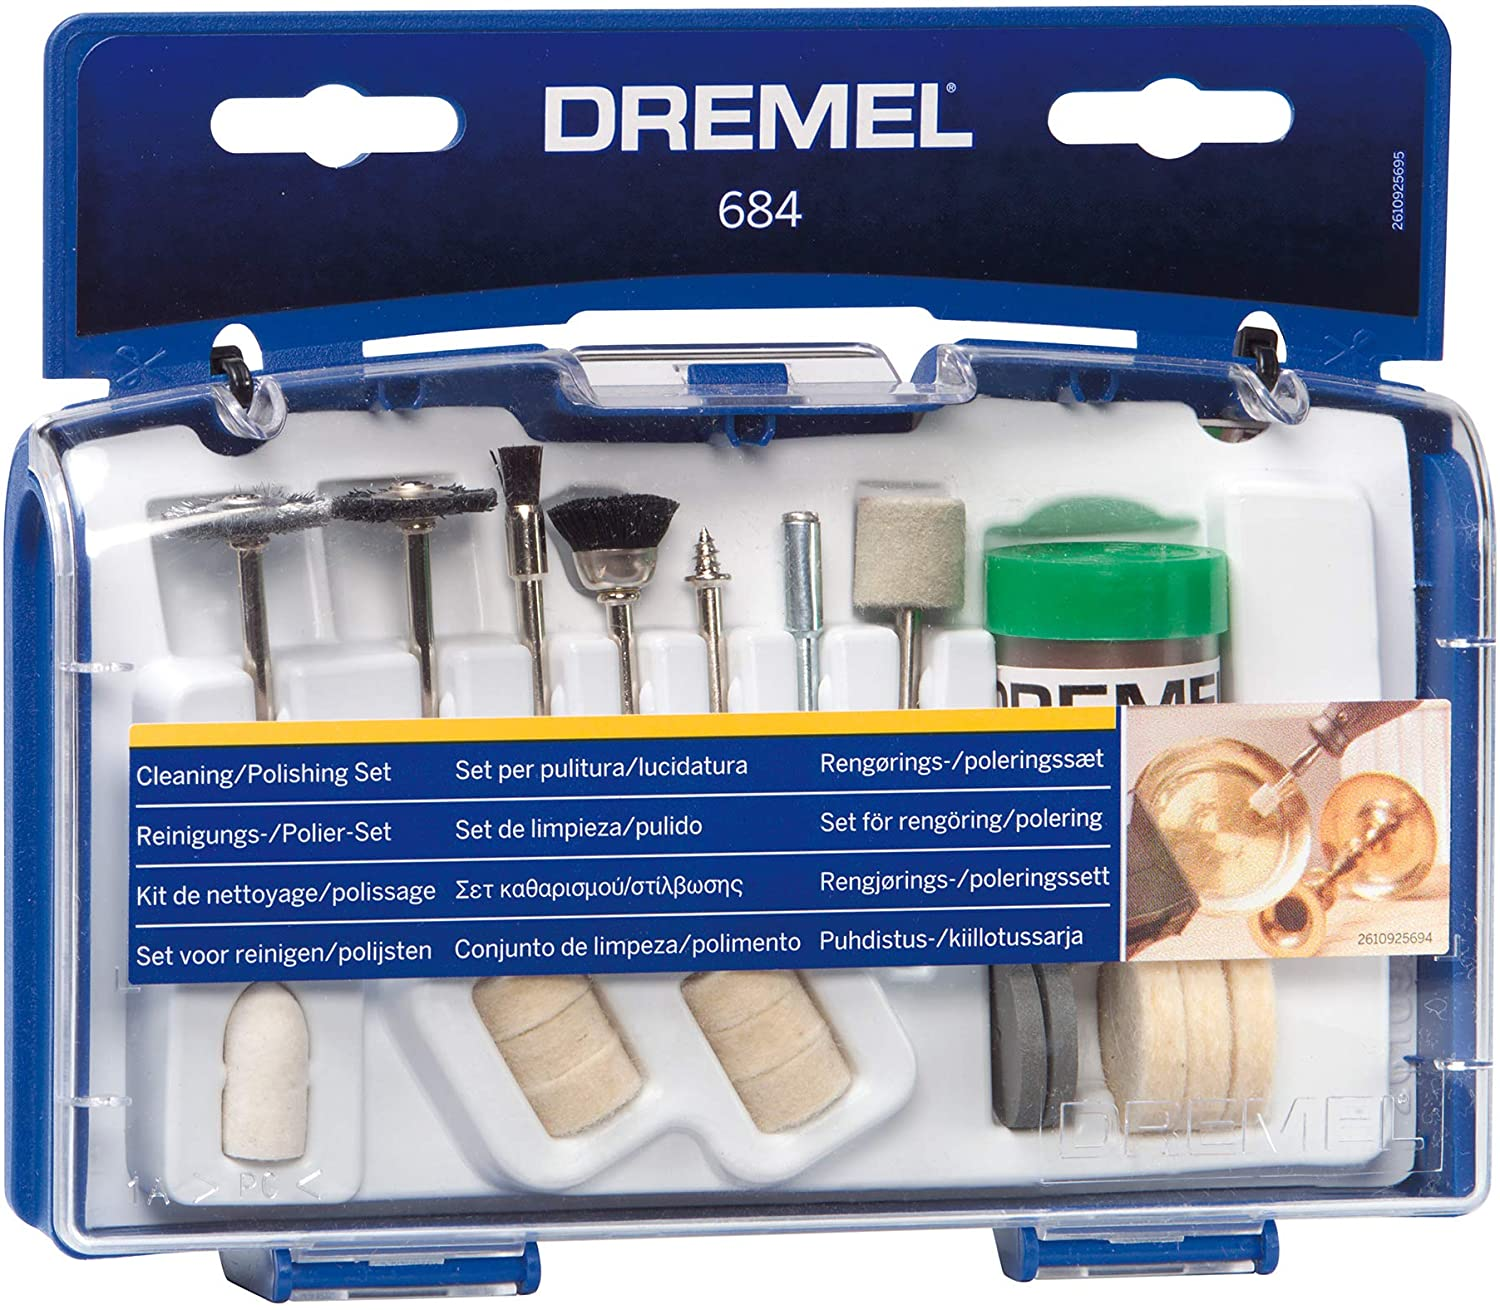 Dremel 684-01 20-Piece Cleaning & Polishing Rotary Tool Accessory Kit With Case- Includes Buffing Wheels, Polishing Bits, and Compound - Power Rotary Tool Accessories -